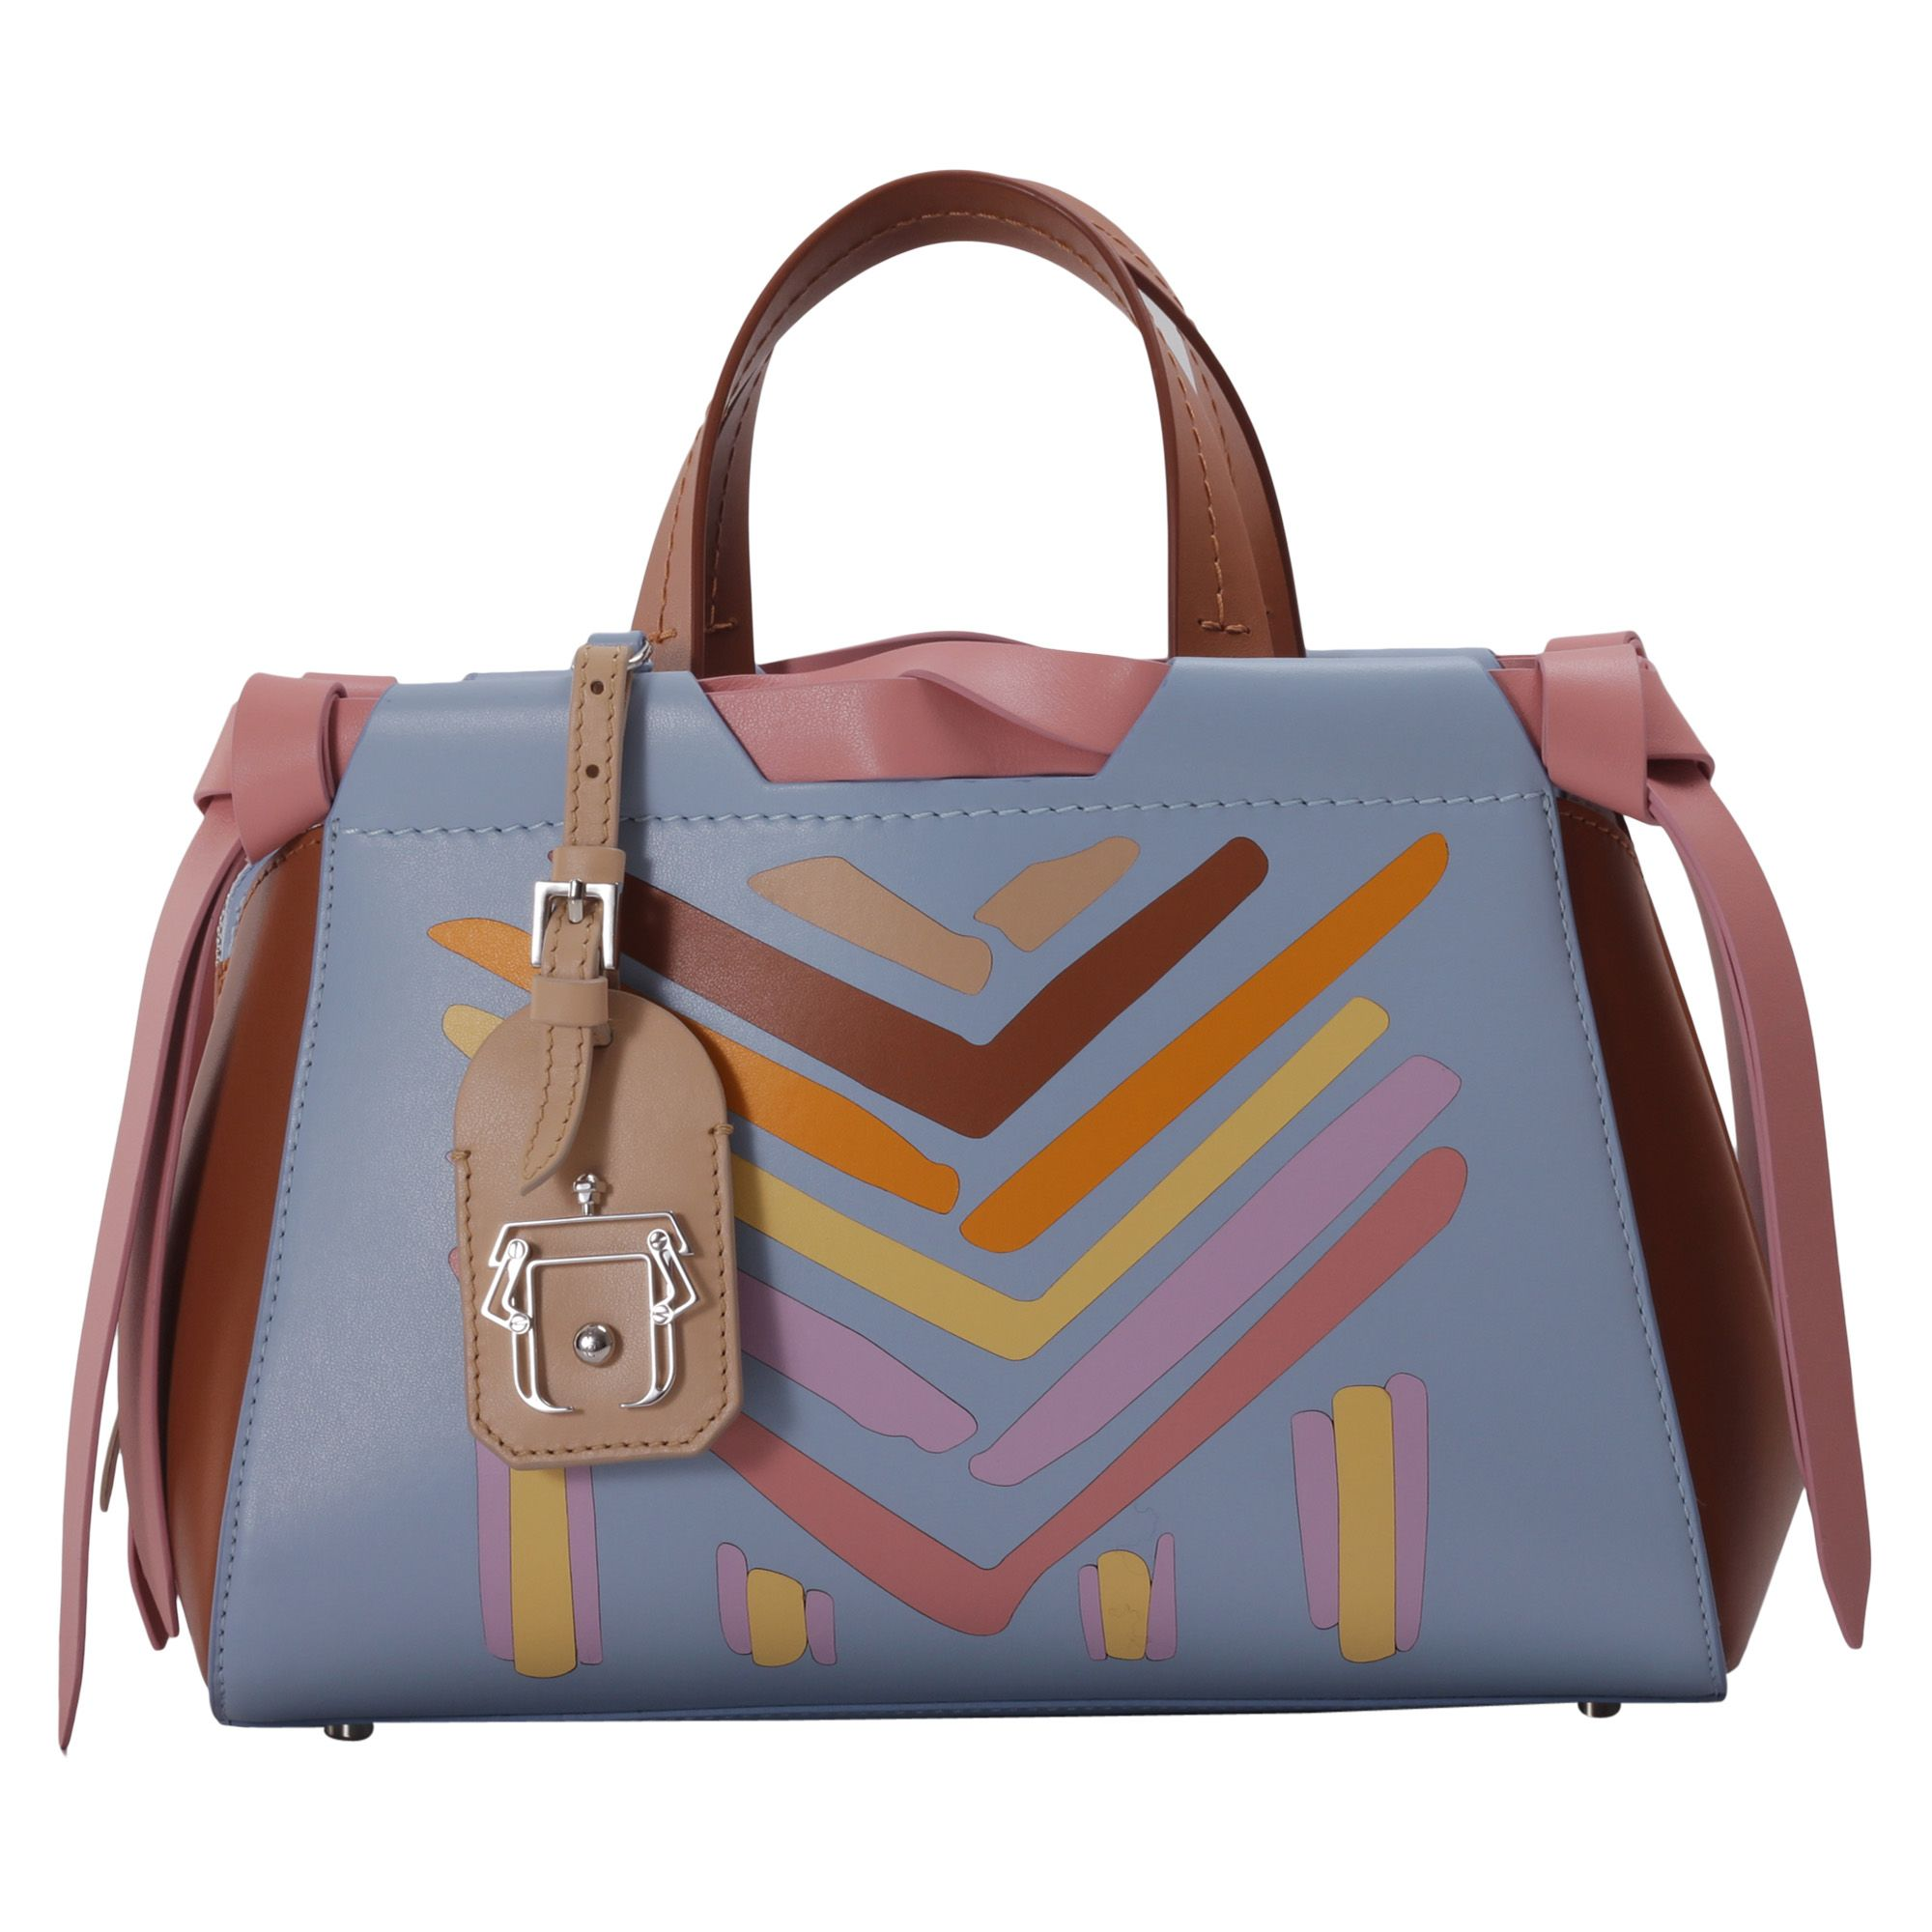 Paula Cademartori LINDA LEATHER BAG